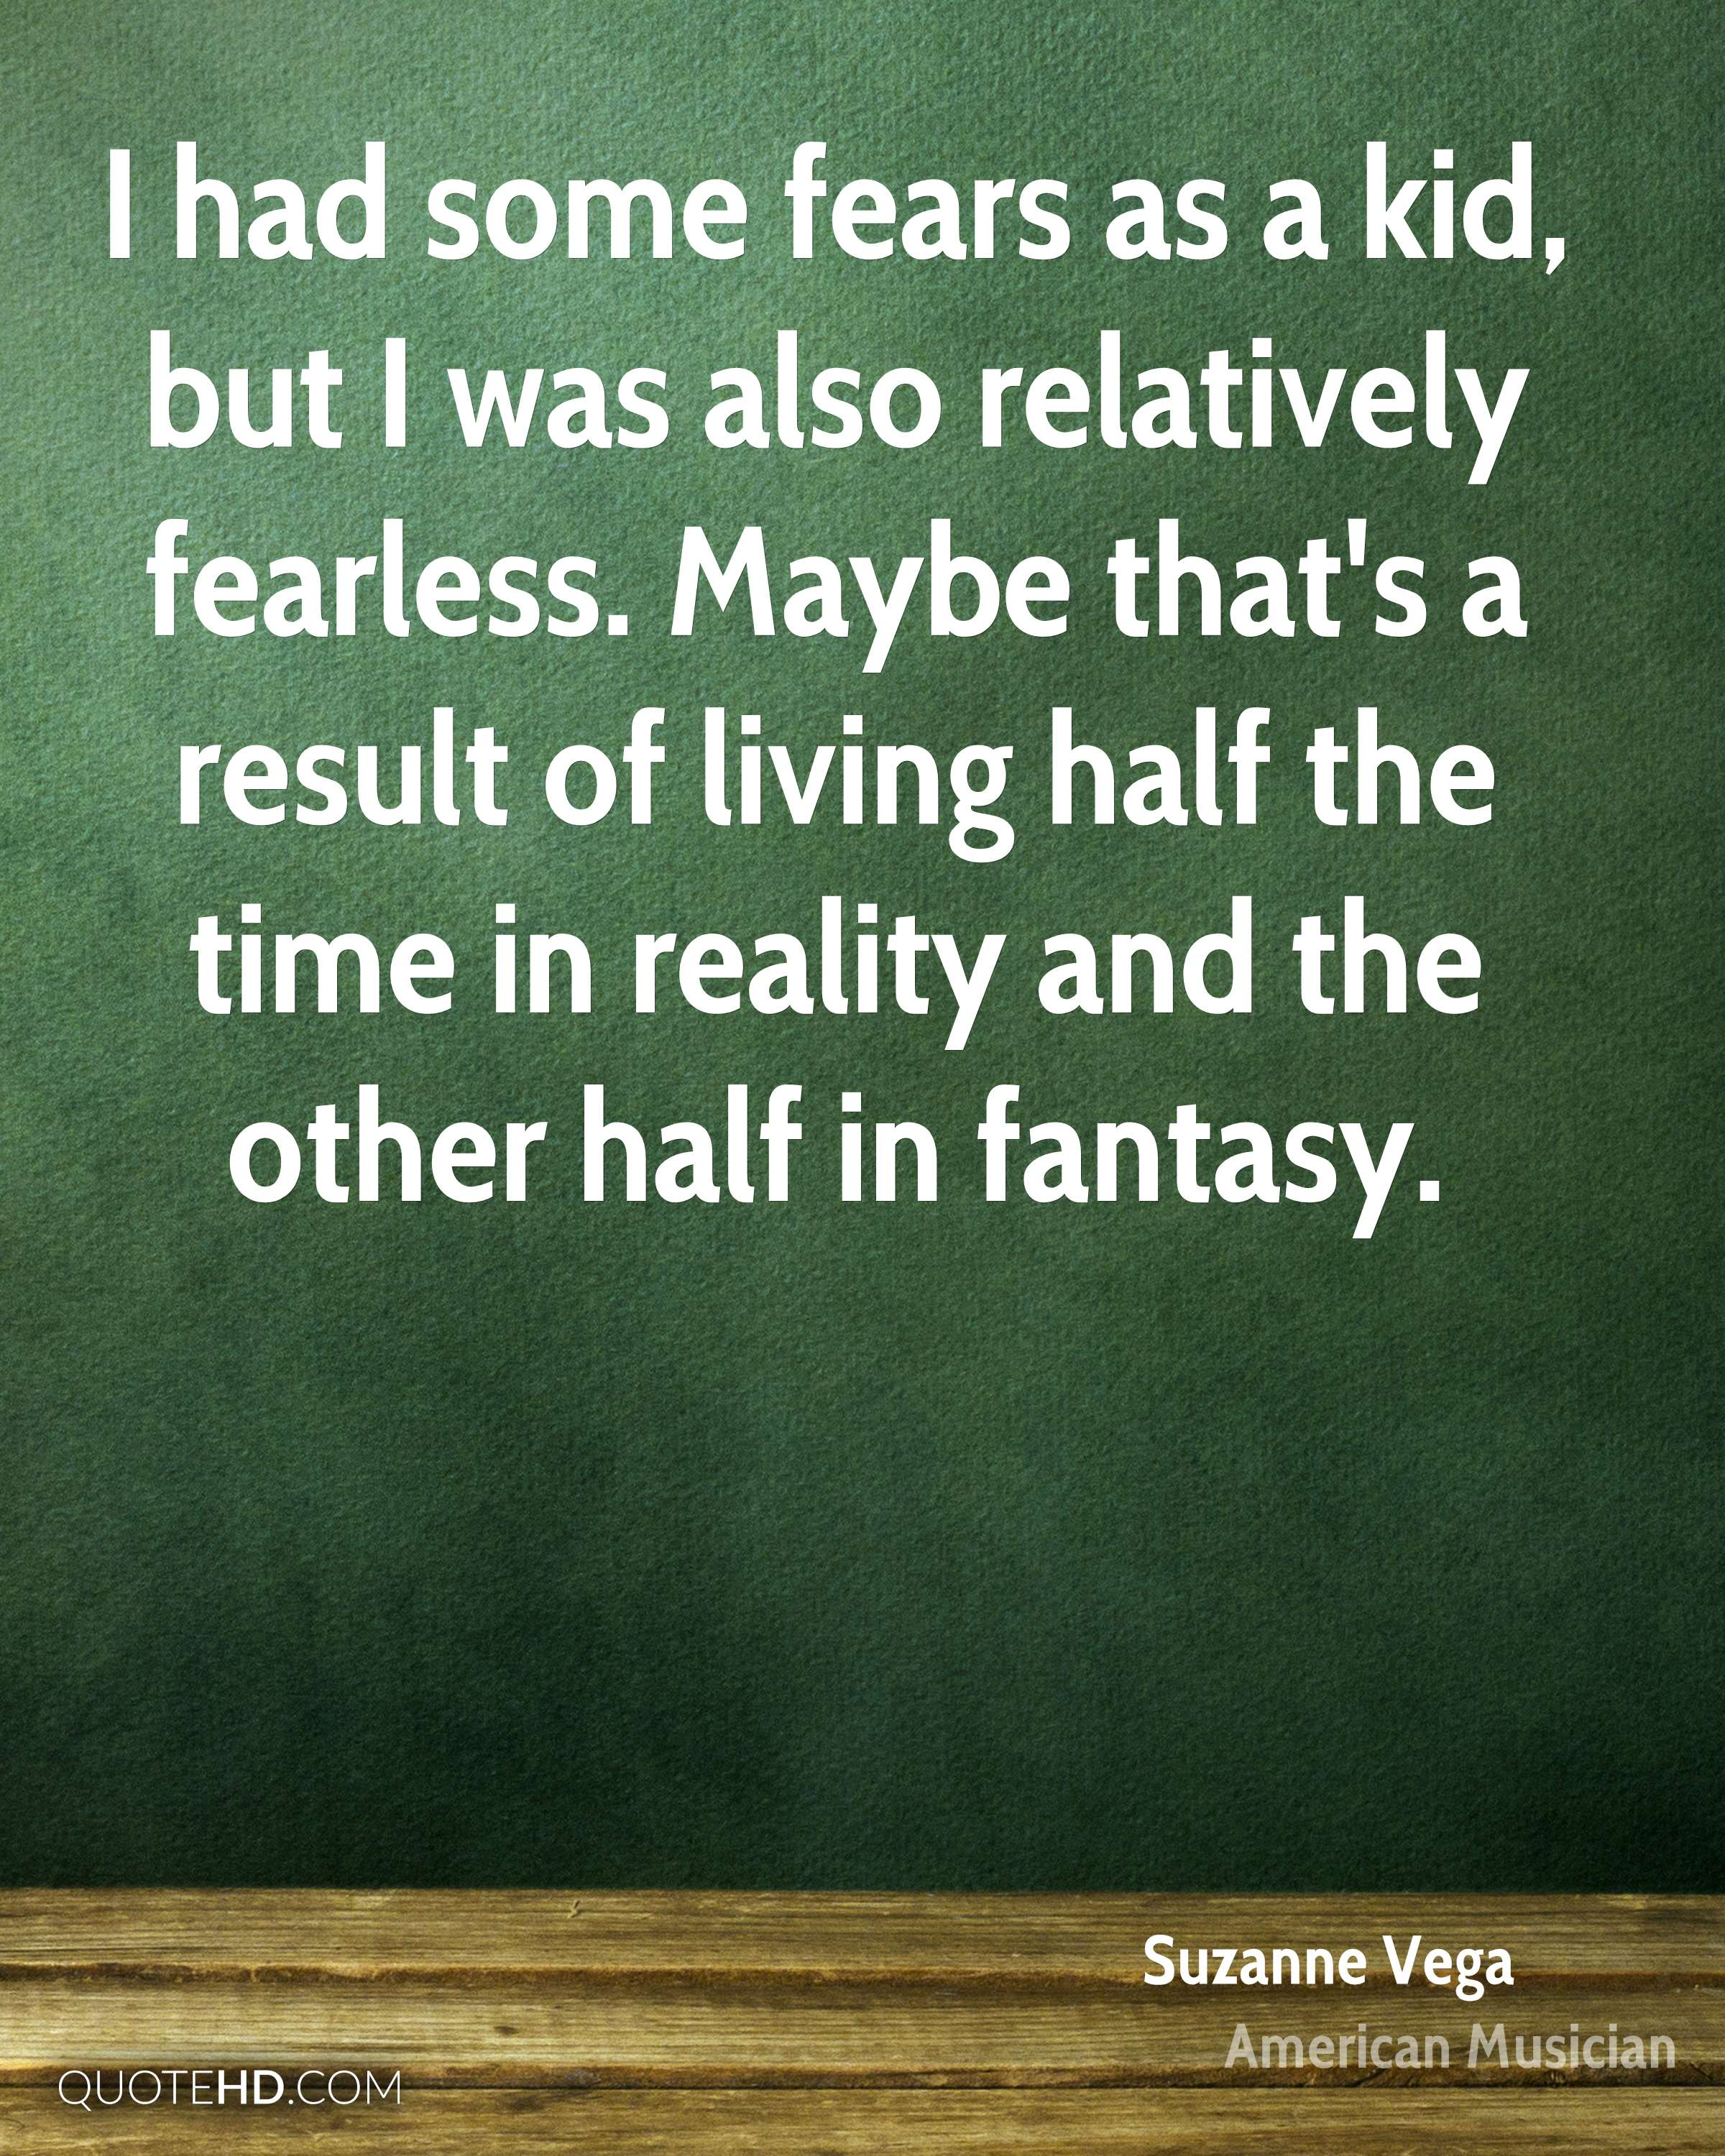 I had some fears as a kid, but I was also relatively fearless. Maybe that's a result of living half the time in reality and the other half in fantasy.